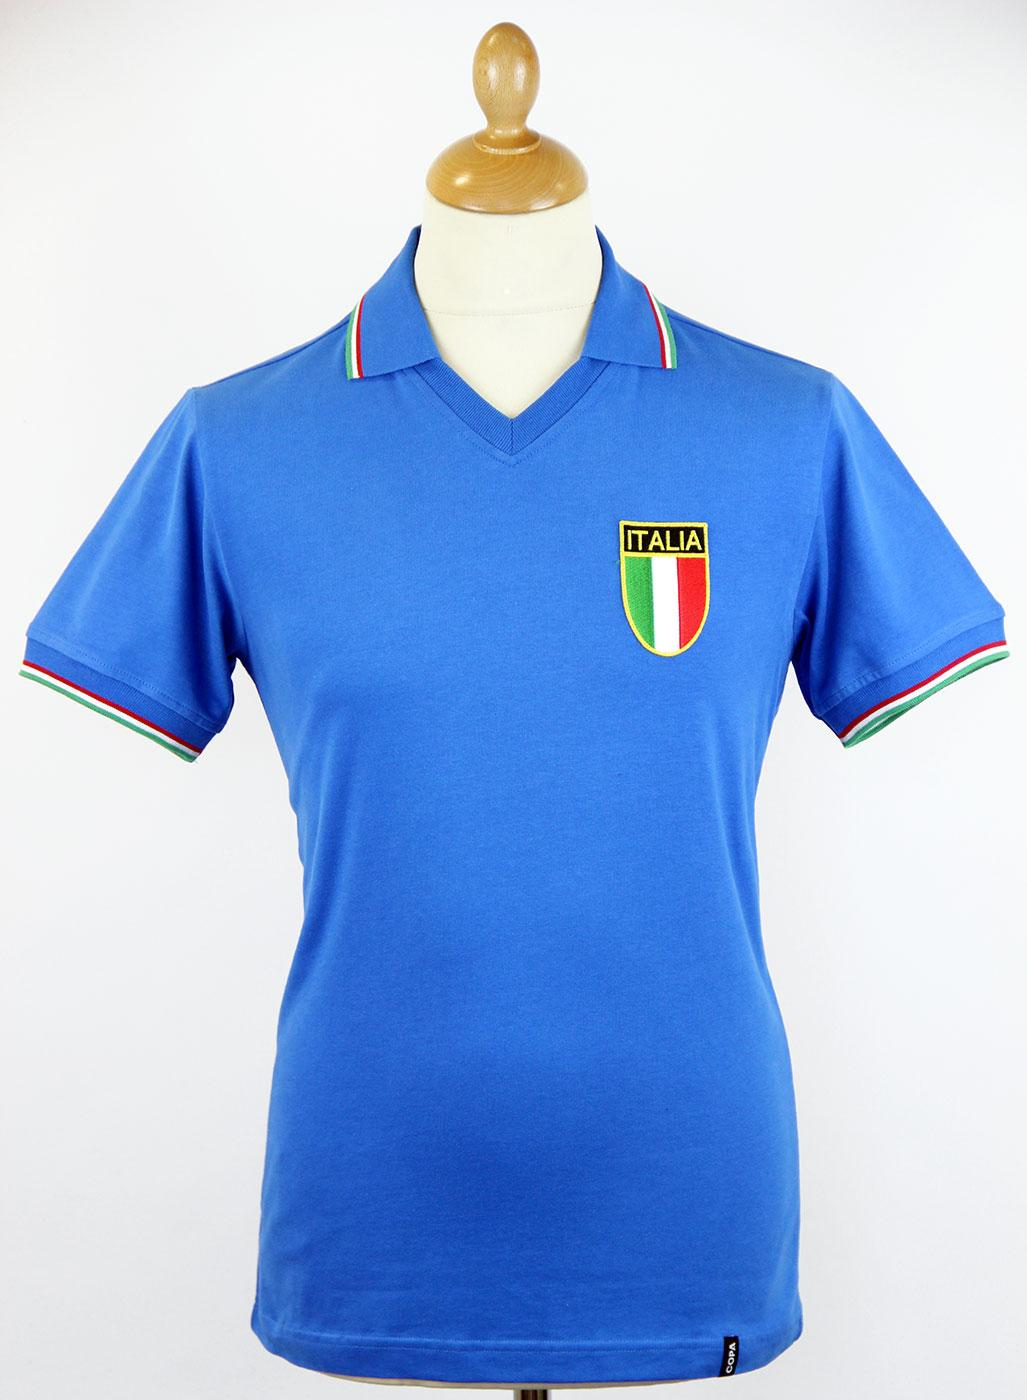 51c0f3971936 COPA Italy Retro Indie 1982 World Cup Football Shirt Blue